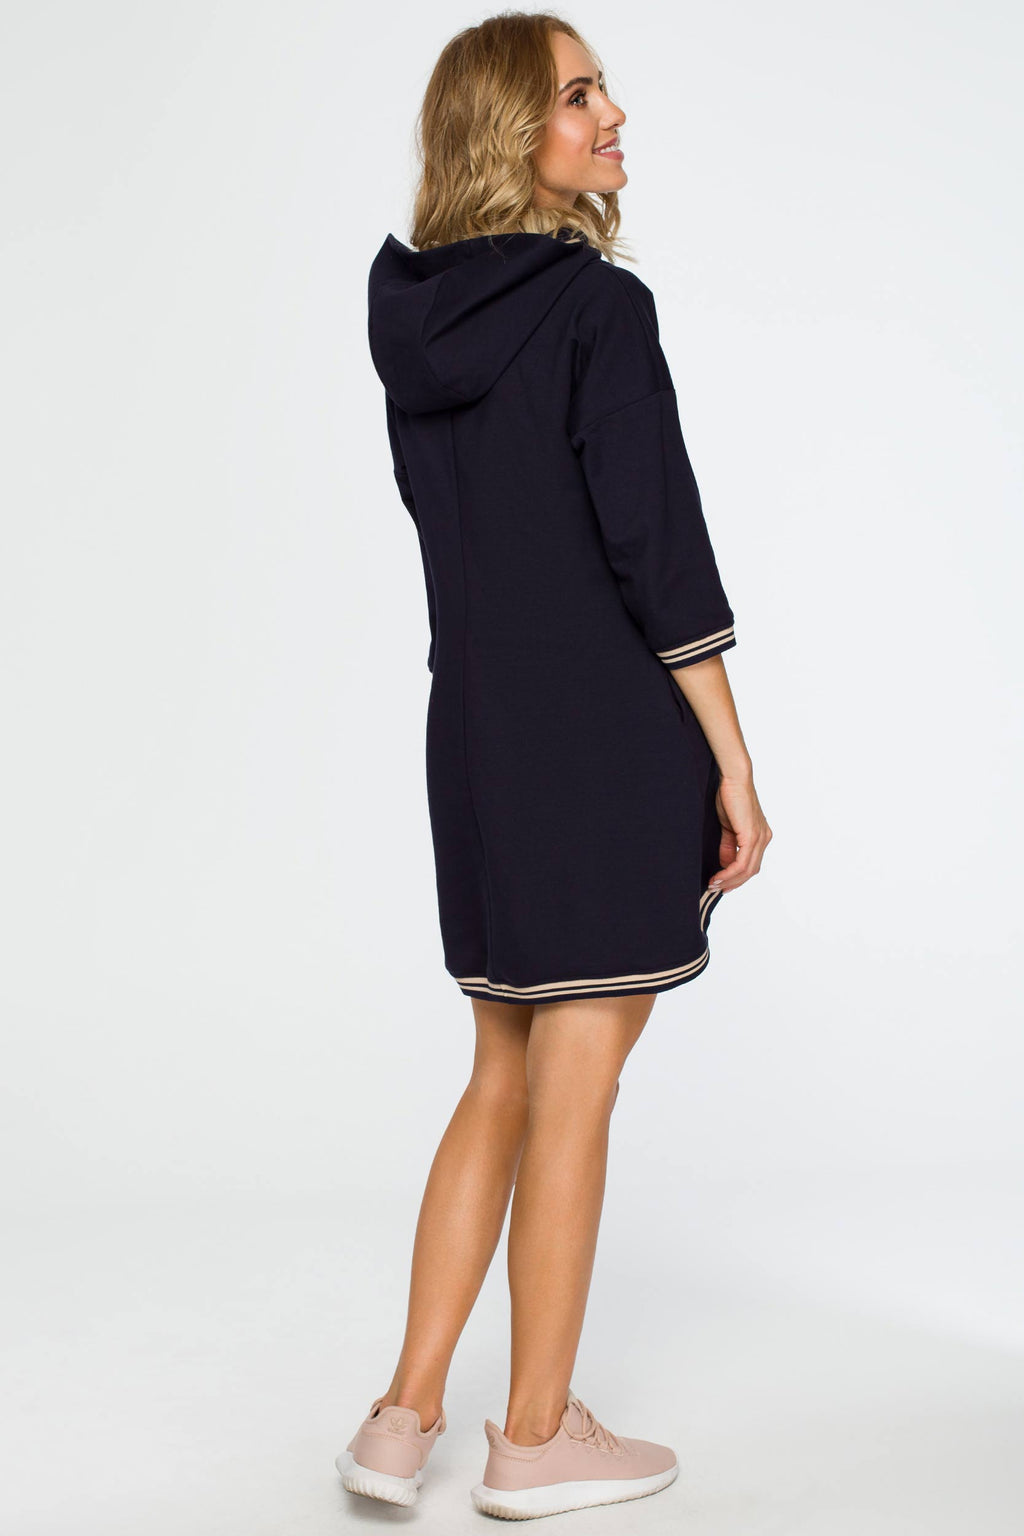 Navy Blue Tunic Hooded Dress With Contrast Details